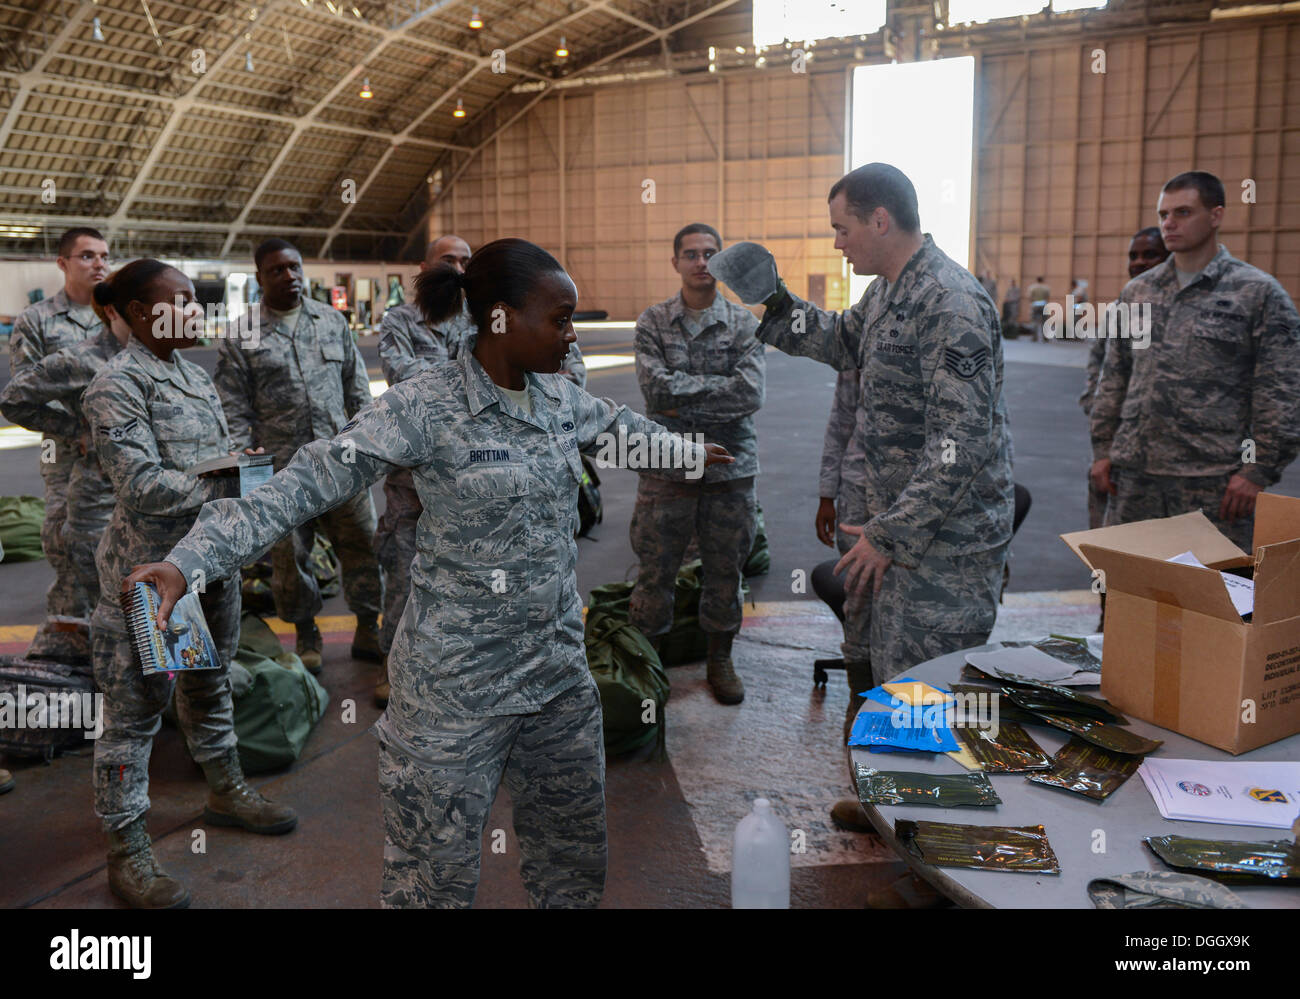 Staff Sgt. Timothy Lyons, 374th Civil Engineer Squadron, simulates patting down Airman 1st Class Brushunda Brittain, 374th Maintenance Squadron, with a M295 decontamination kit during the ability to survive and operate rodeo at Yokota Air Base, Japan, Oct - Stock Image